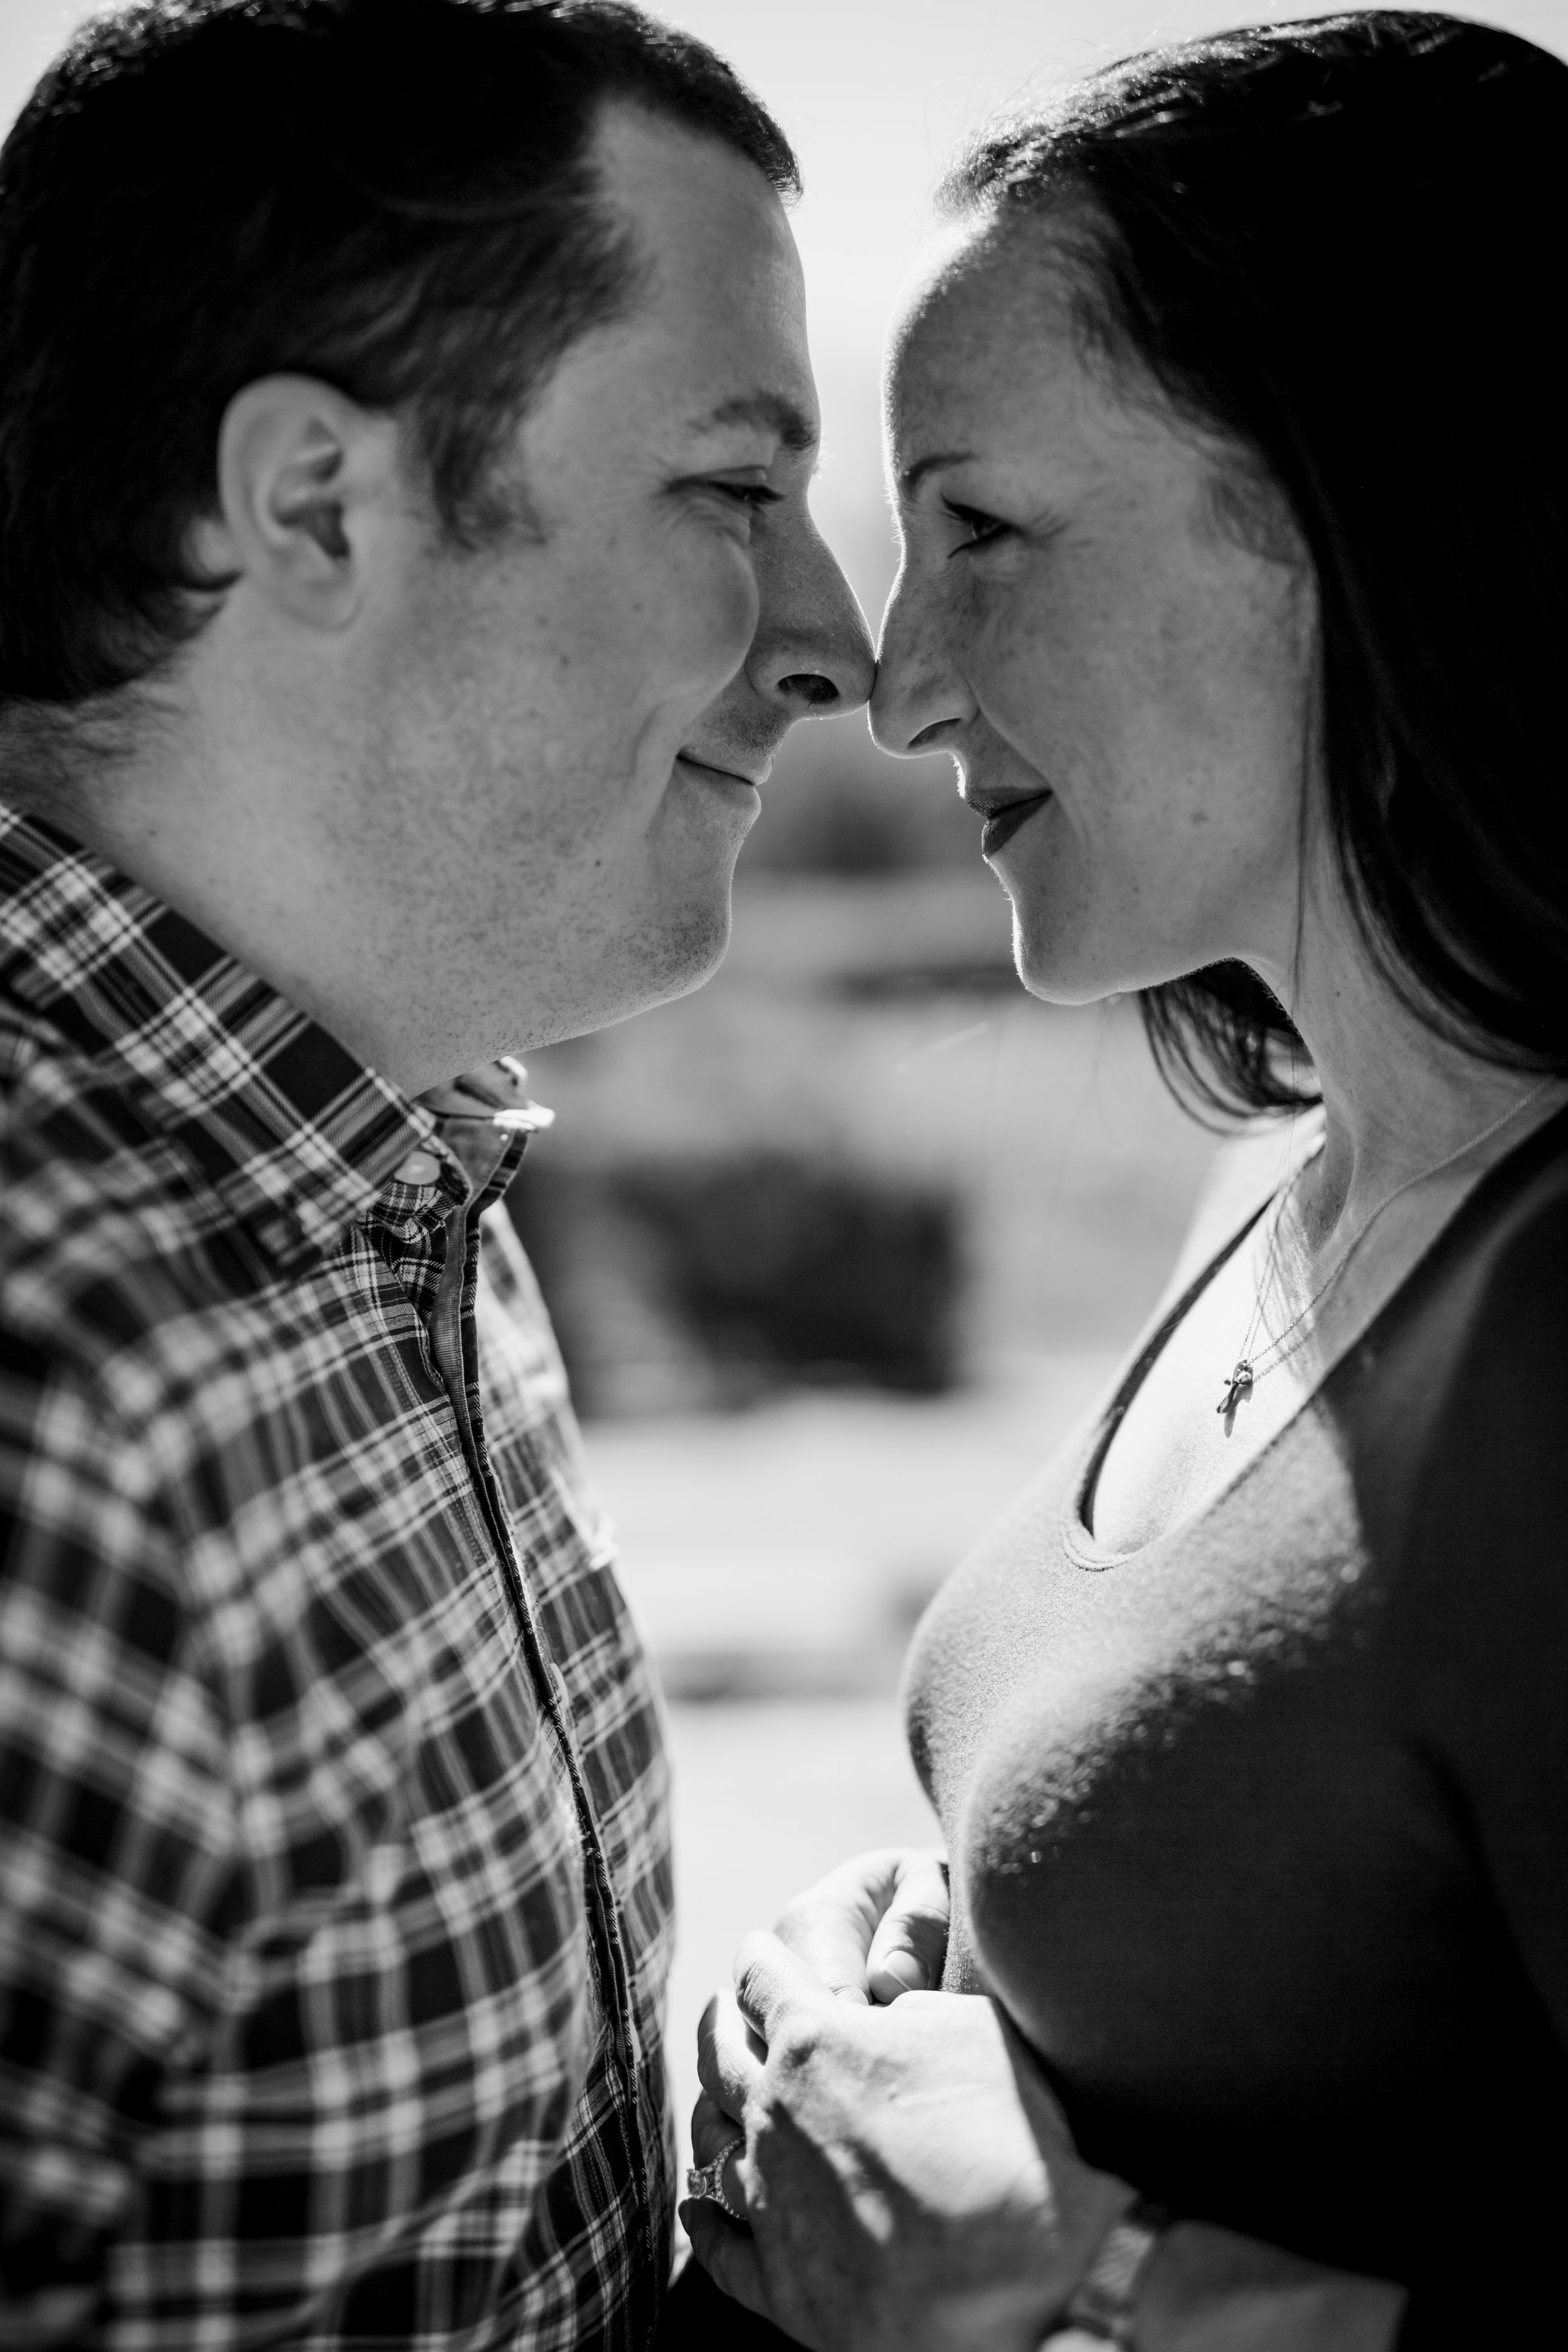 Orange County family photographer. Portrait of mom and dad as their noses touch and they look in each other's eyes during maternity photo shoot at Quail Hill Trailhead Irvine